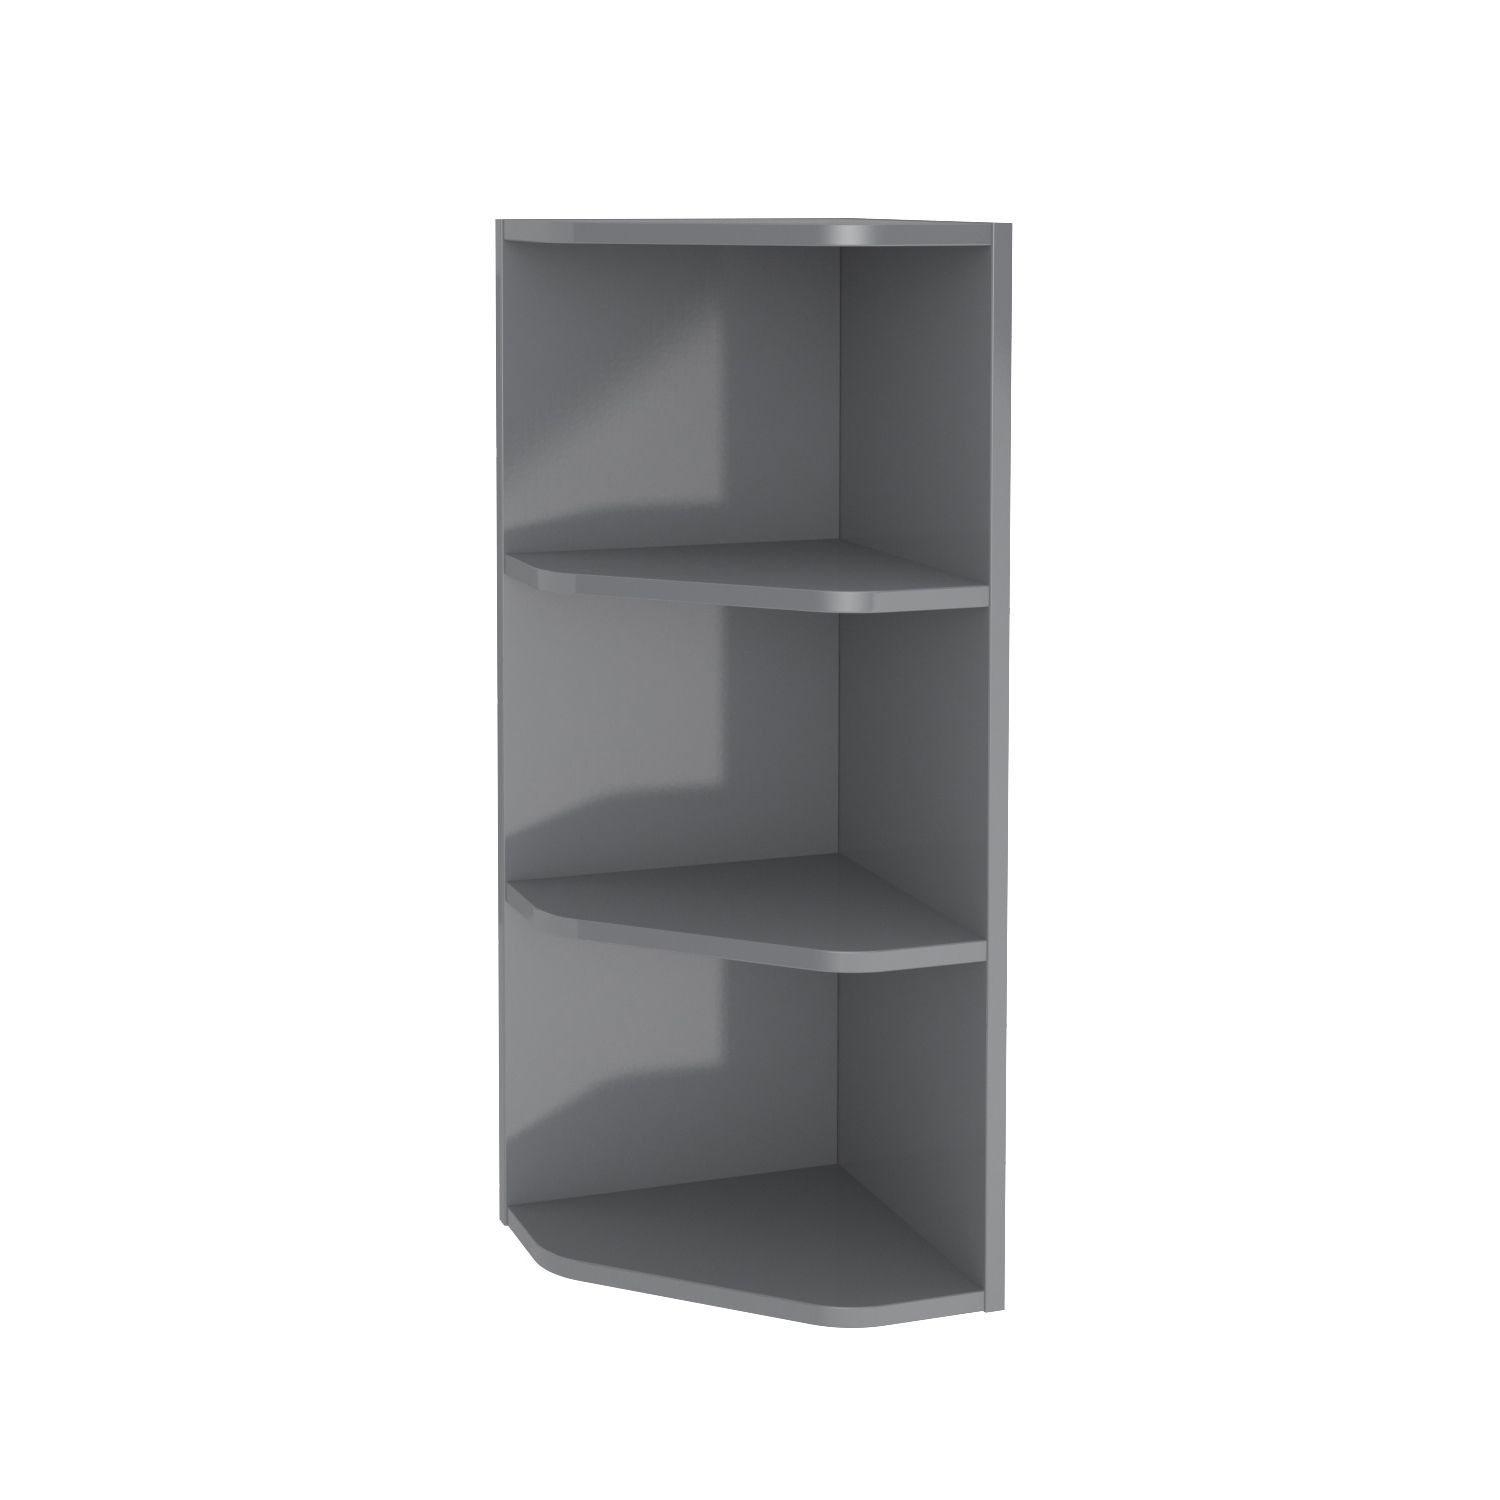 Imandra Grey Shelving Column L 340mm D 360mm Departments Diy  # Muebles Cic Bodega